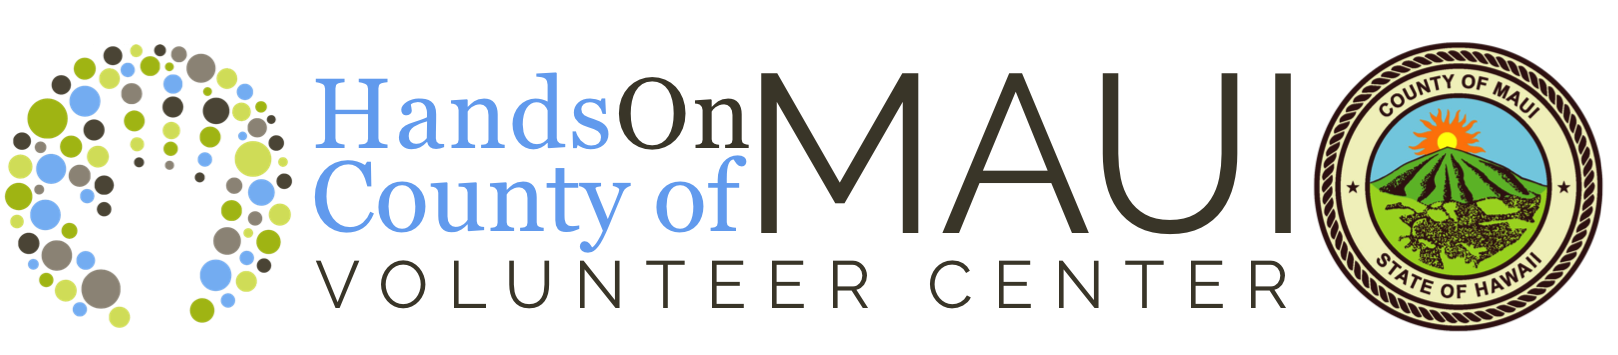 County of Maui Volunteer Center